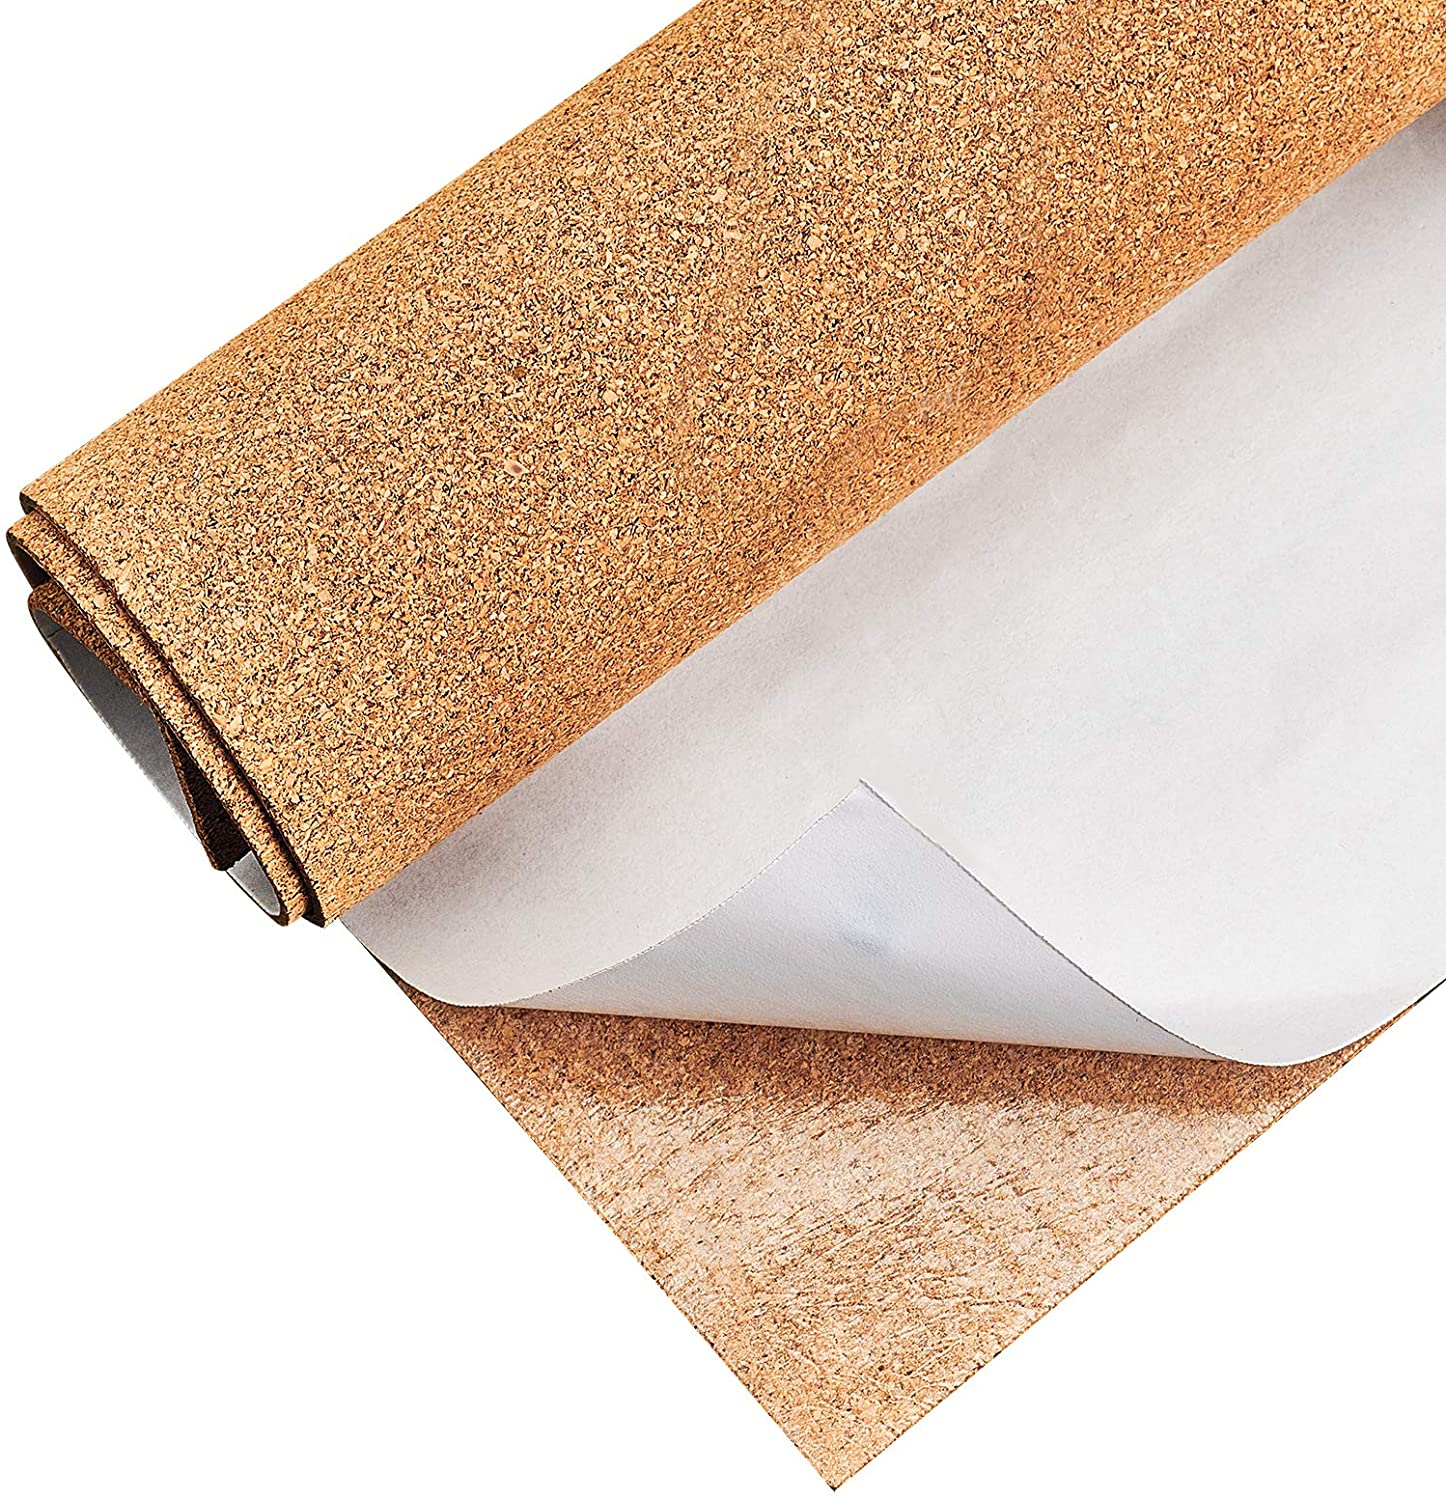 BENECREAT 1mm Thick Adhesive Cork Roll Liner, 12x24 Inch Insulation Cork Roll for Bulletin Board, Coasters, Door Signs and Floor Wall Decors